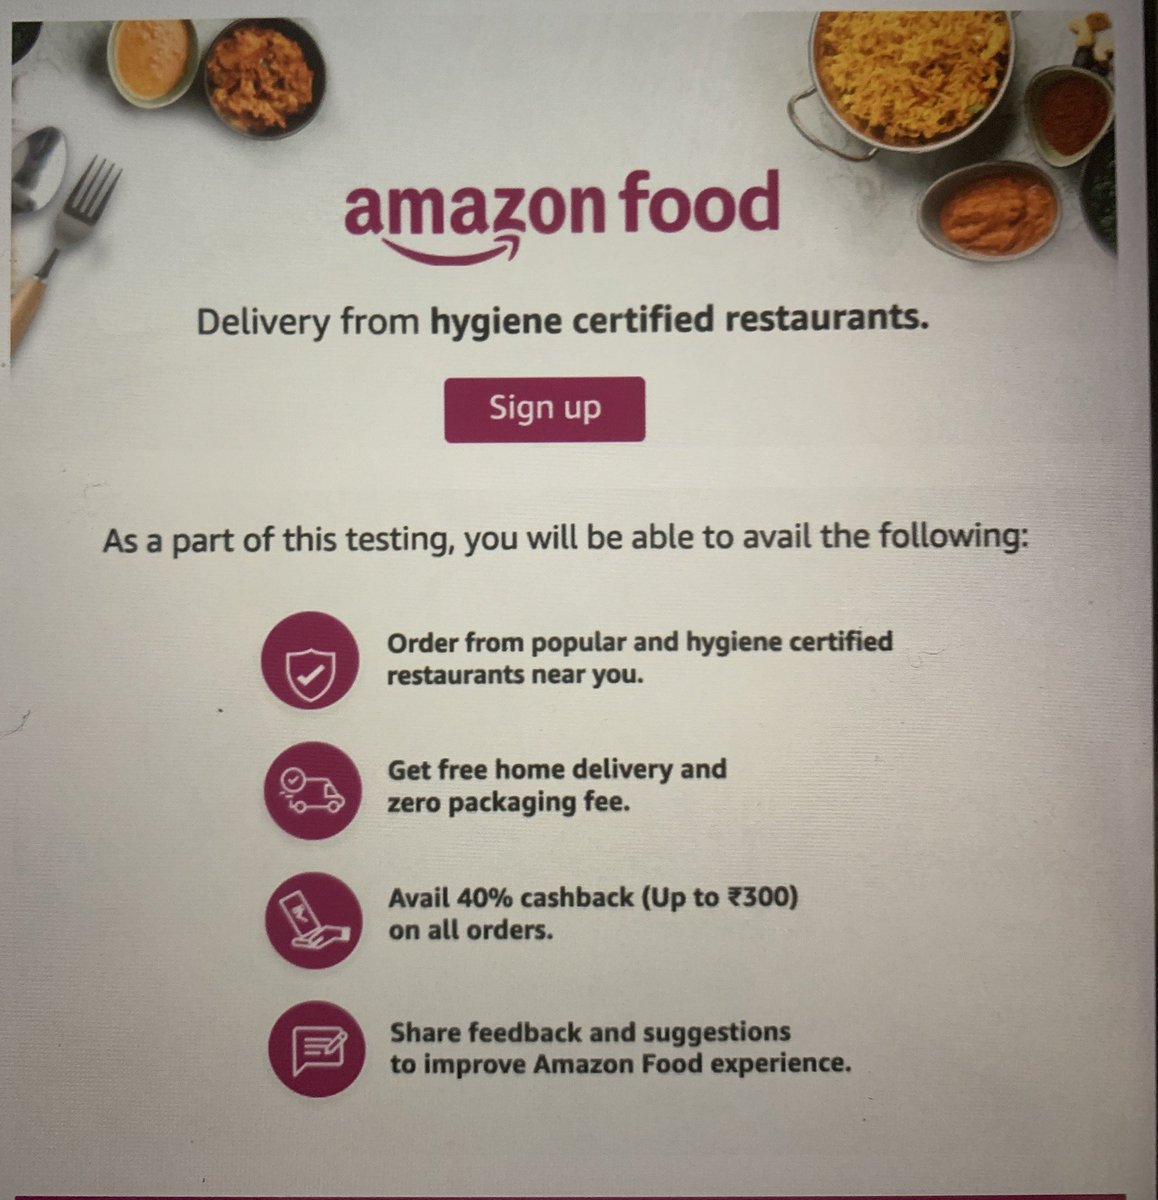 Another one #AmazonFood pic.twitter.com/F11D9zawvT